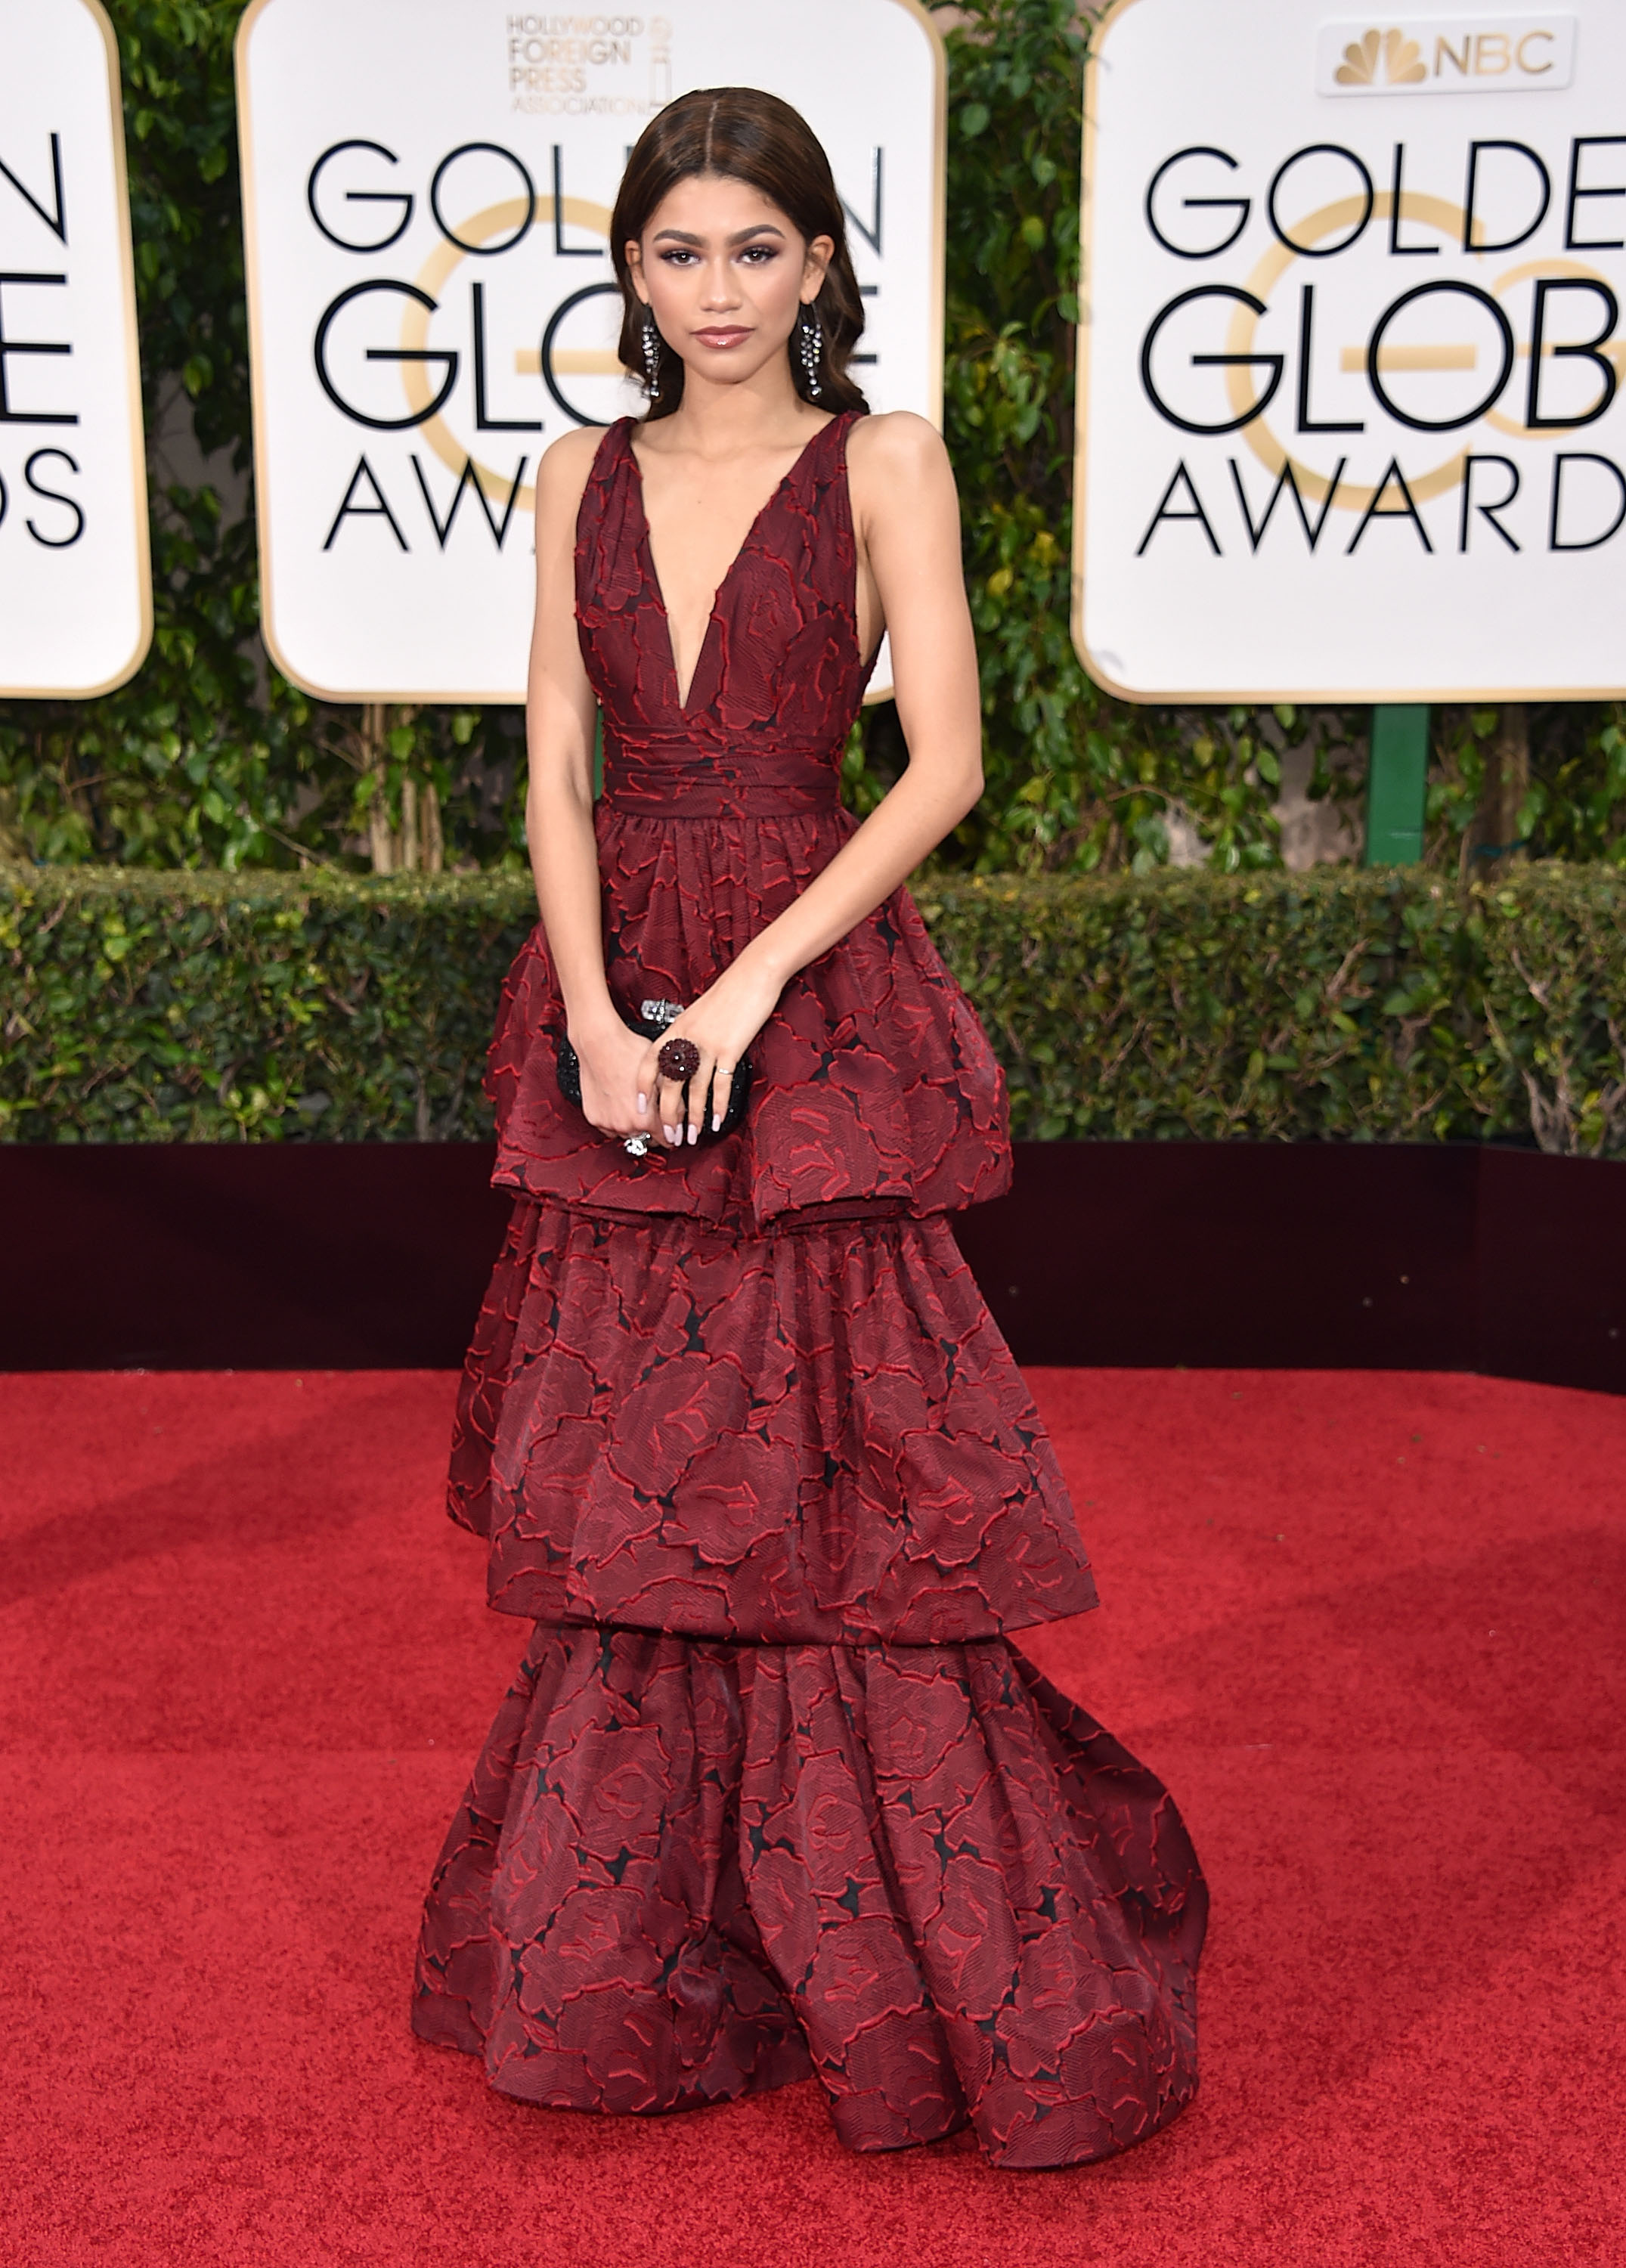 <p>Actress and musician Zendaya has been named the latest face of Covergirl, news that will come  as no surprise to anyone who's had their eye on the red carpet. </p><p>We revisit the boundary-pushing style chameleon's best looks, from her elegant red carpet gowns to the sculptural Fausto Puglisi dress that stole the show at the 2015 Met Gala.</p>